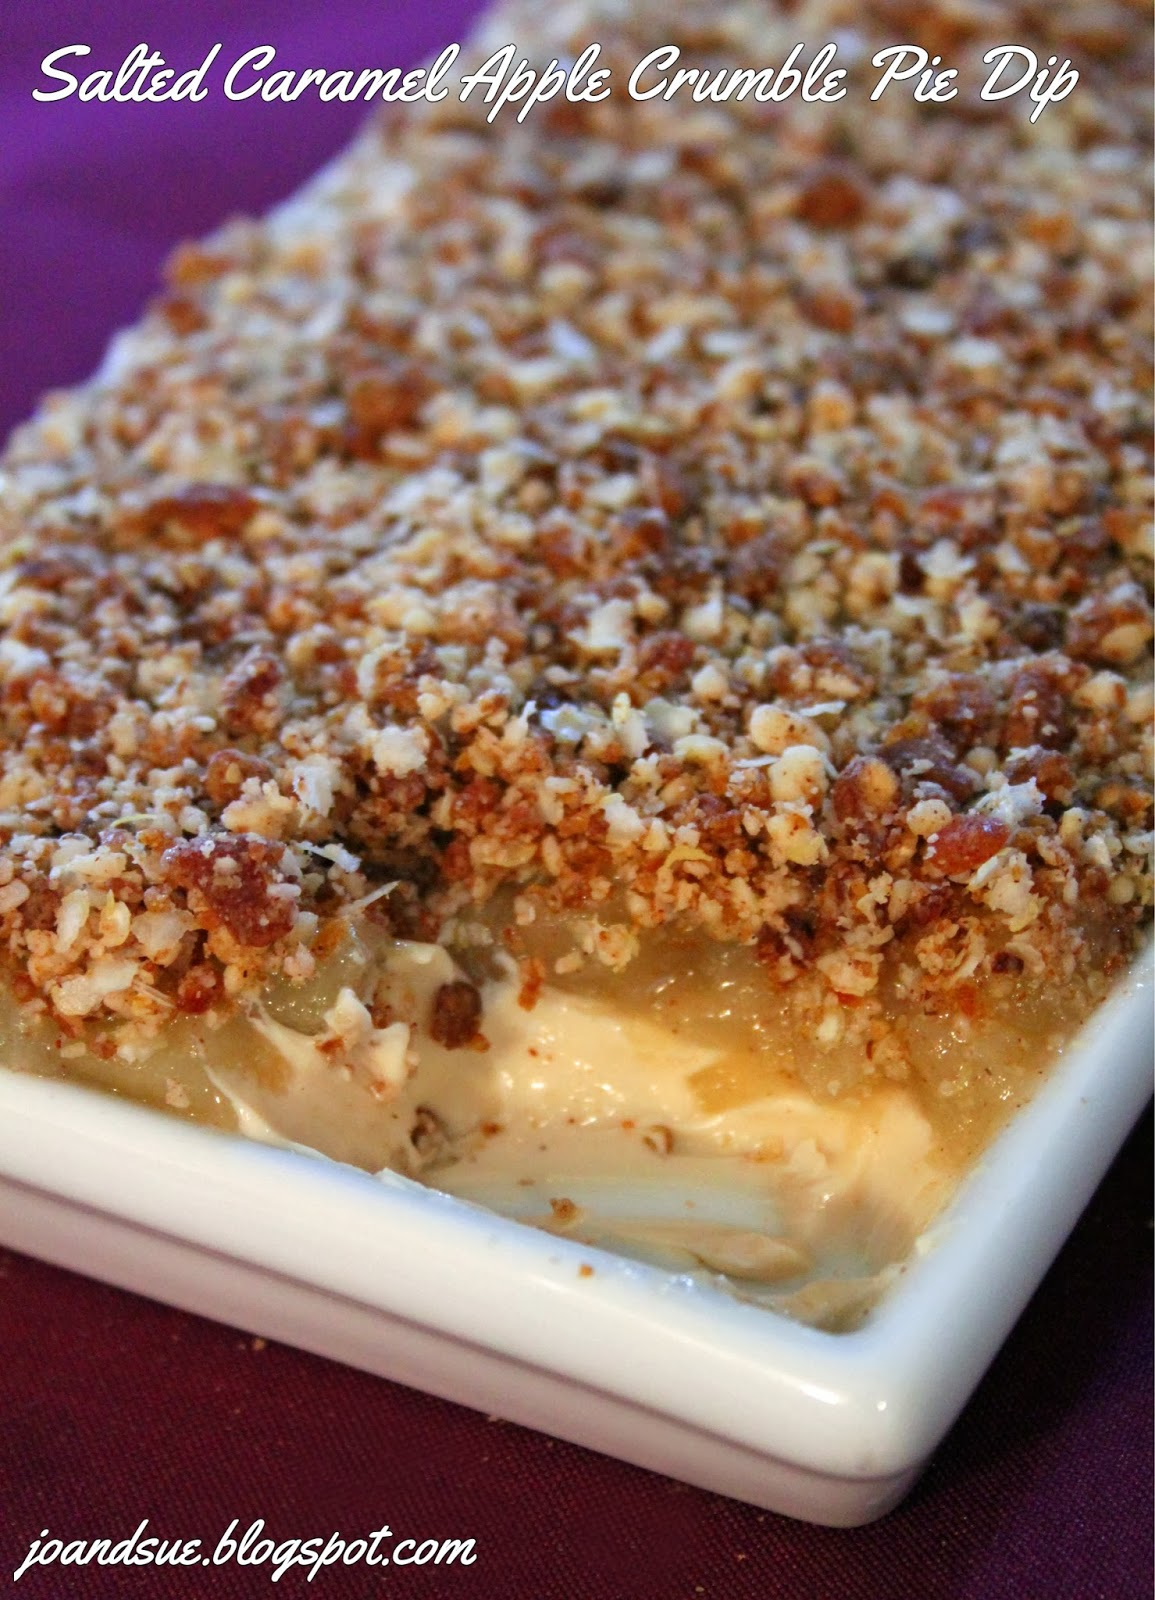 Jo and Sue: Apple Crumble Salted Caramel Cheesecake Pie Dip